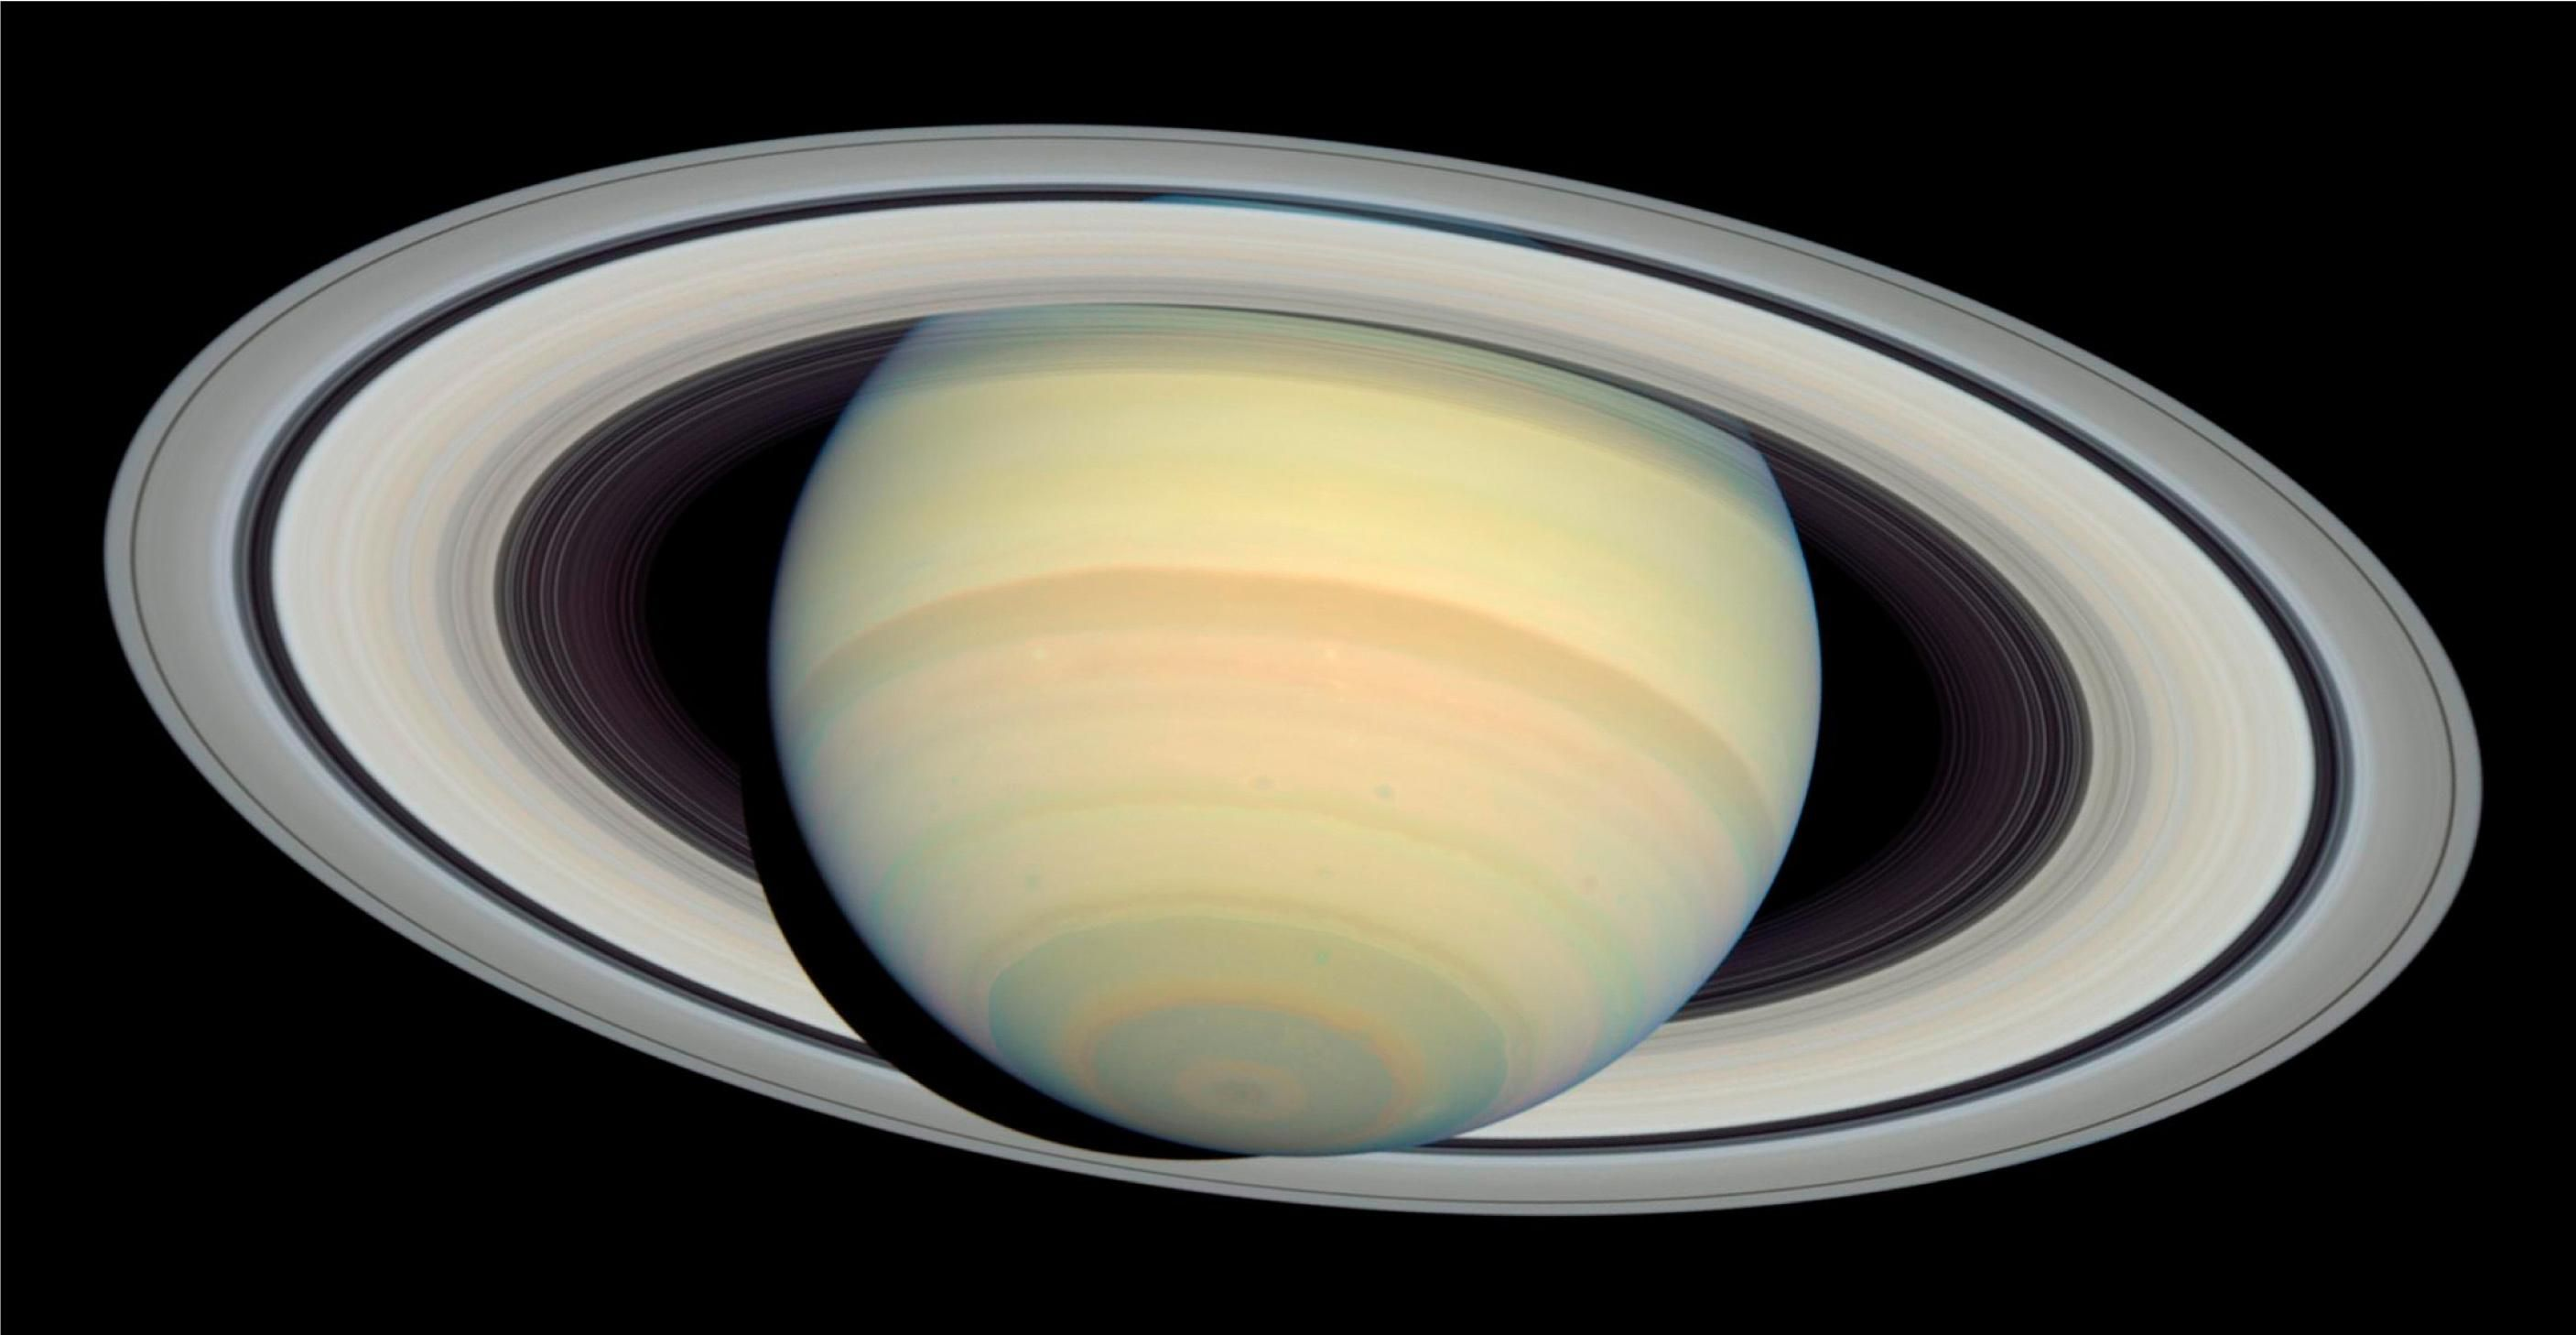 hubble images of saturn - photo #23